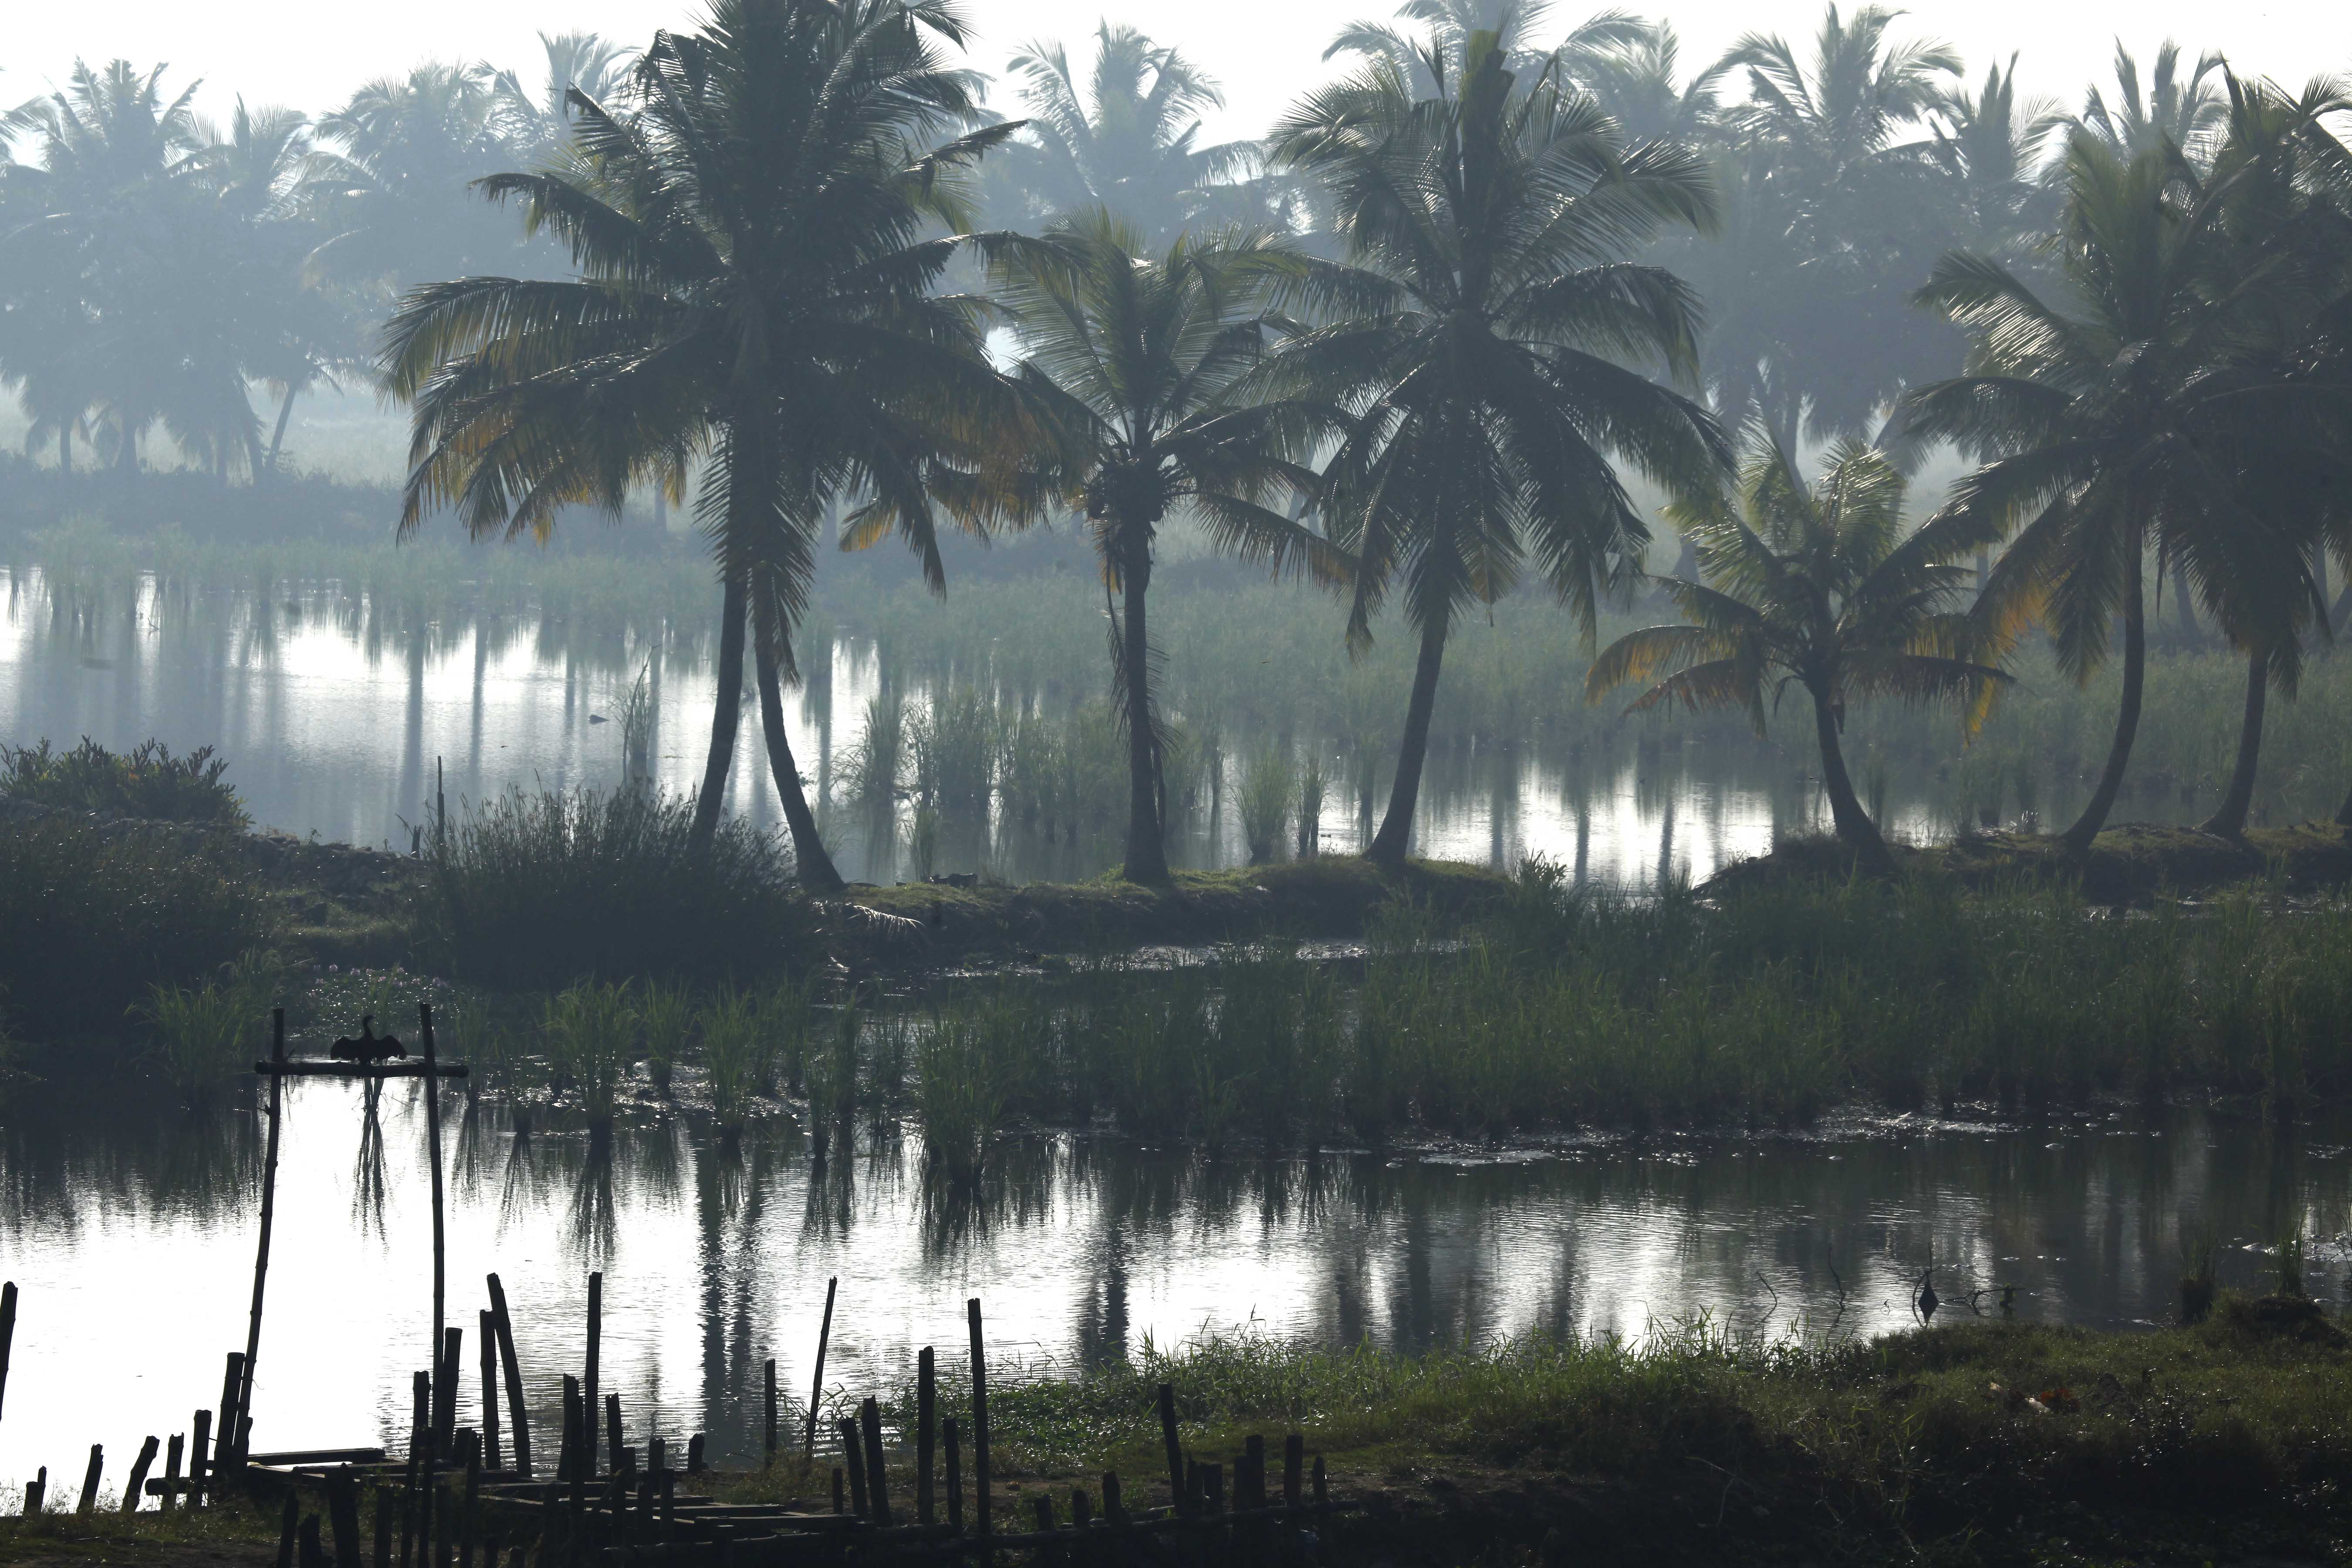 kerala tourism This is the official website of kerala tourism, government of kerala, india in youtube, which is the home page of wwwkeralatourismorg wwwkeralatourismor.